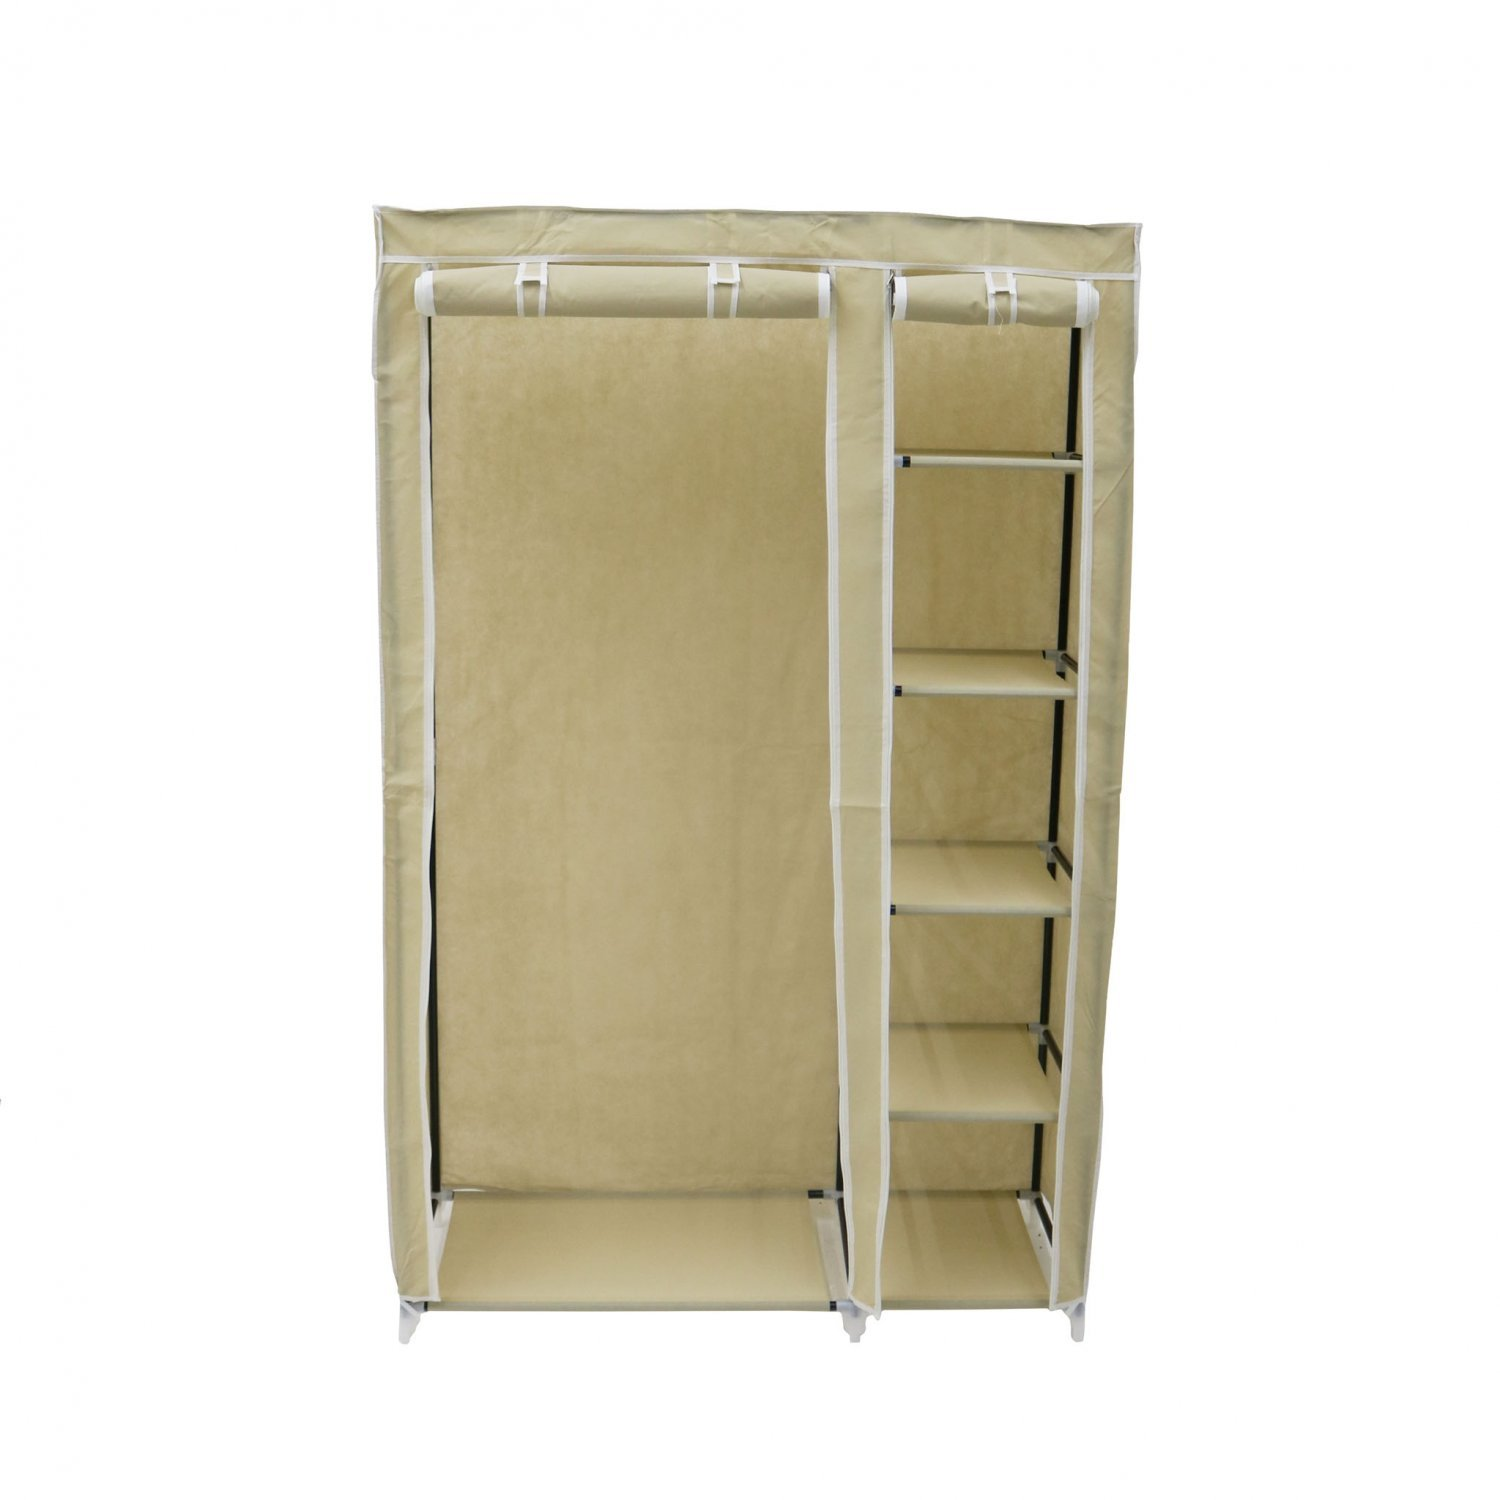 Double Cream Canvas Wardrobe Clothes Rail Hanging Storage Closet